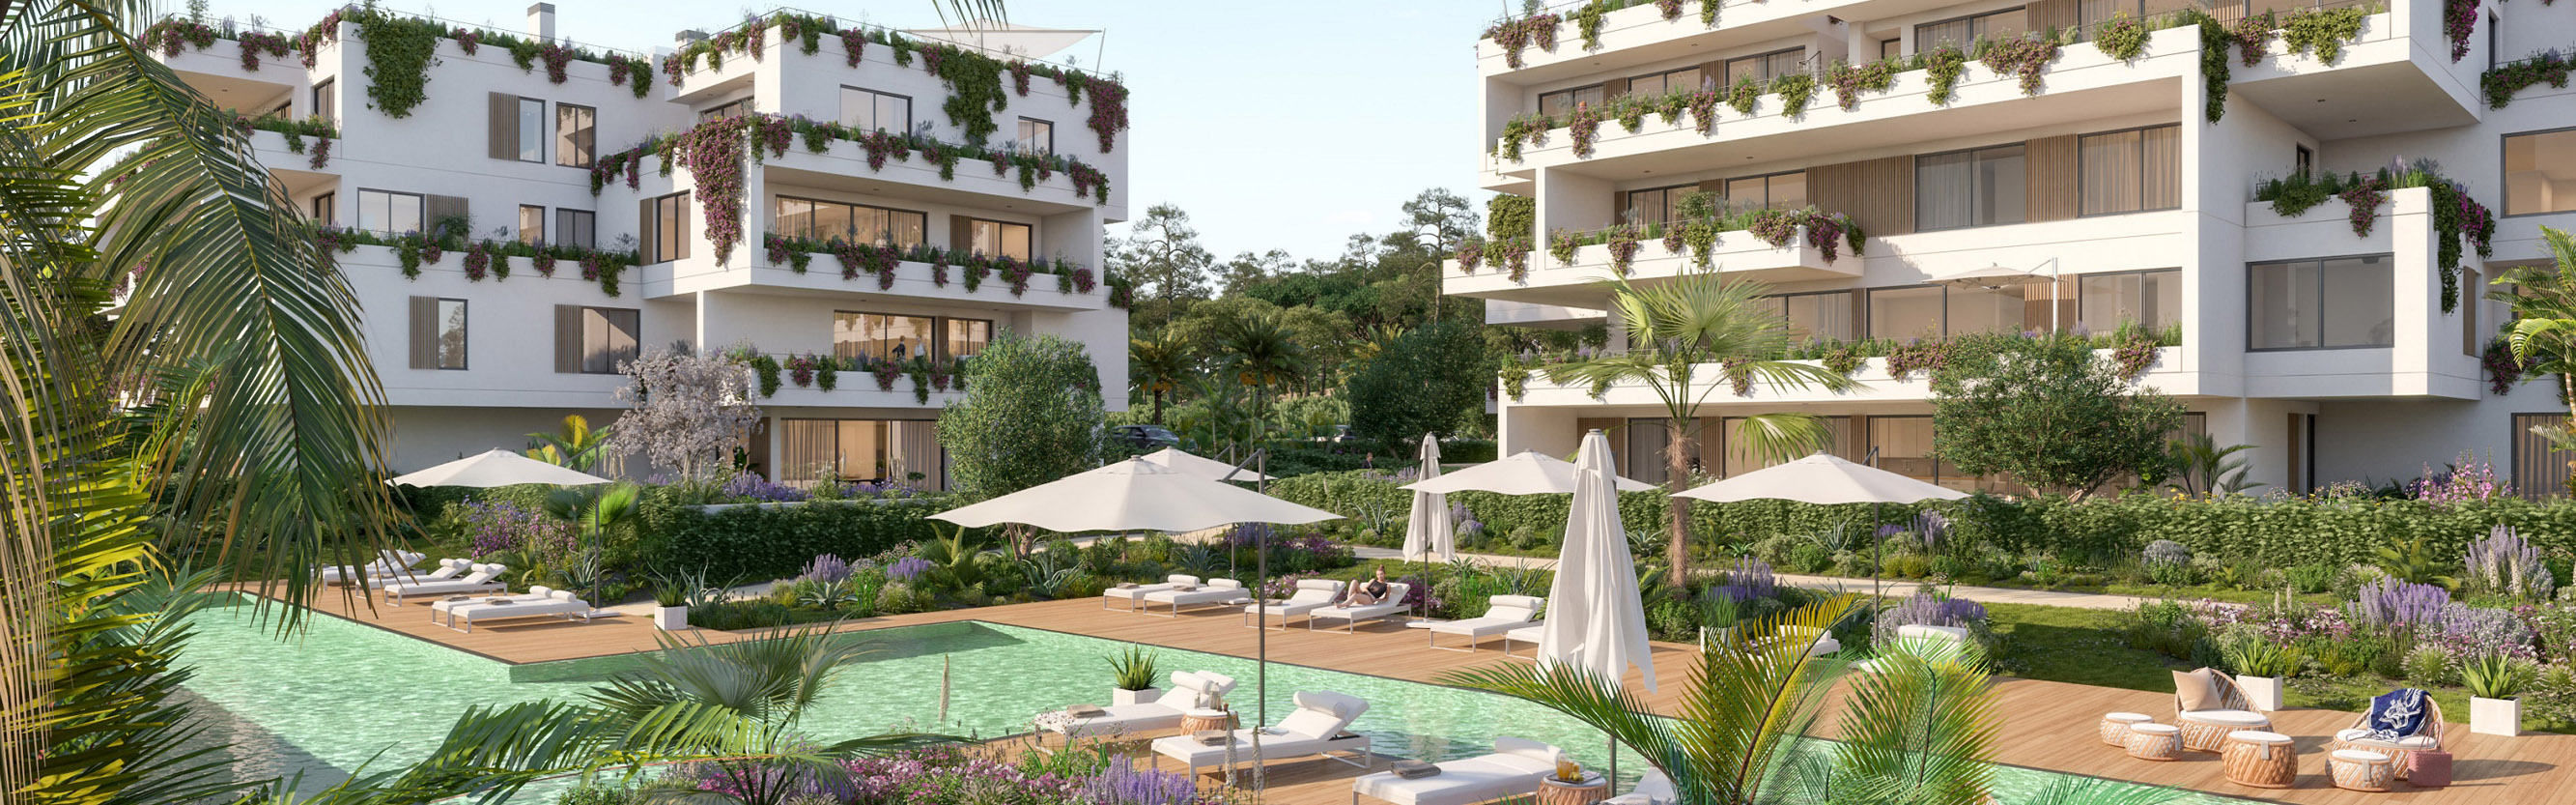 Balearen - GREEN ELEMENTS - Apartment Projekt in Nova Santa Ponsa, Mallorca